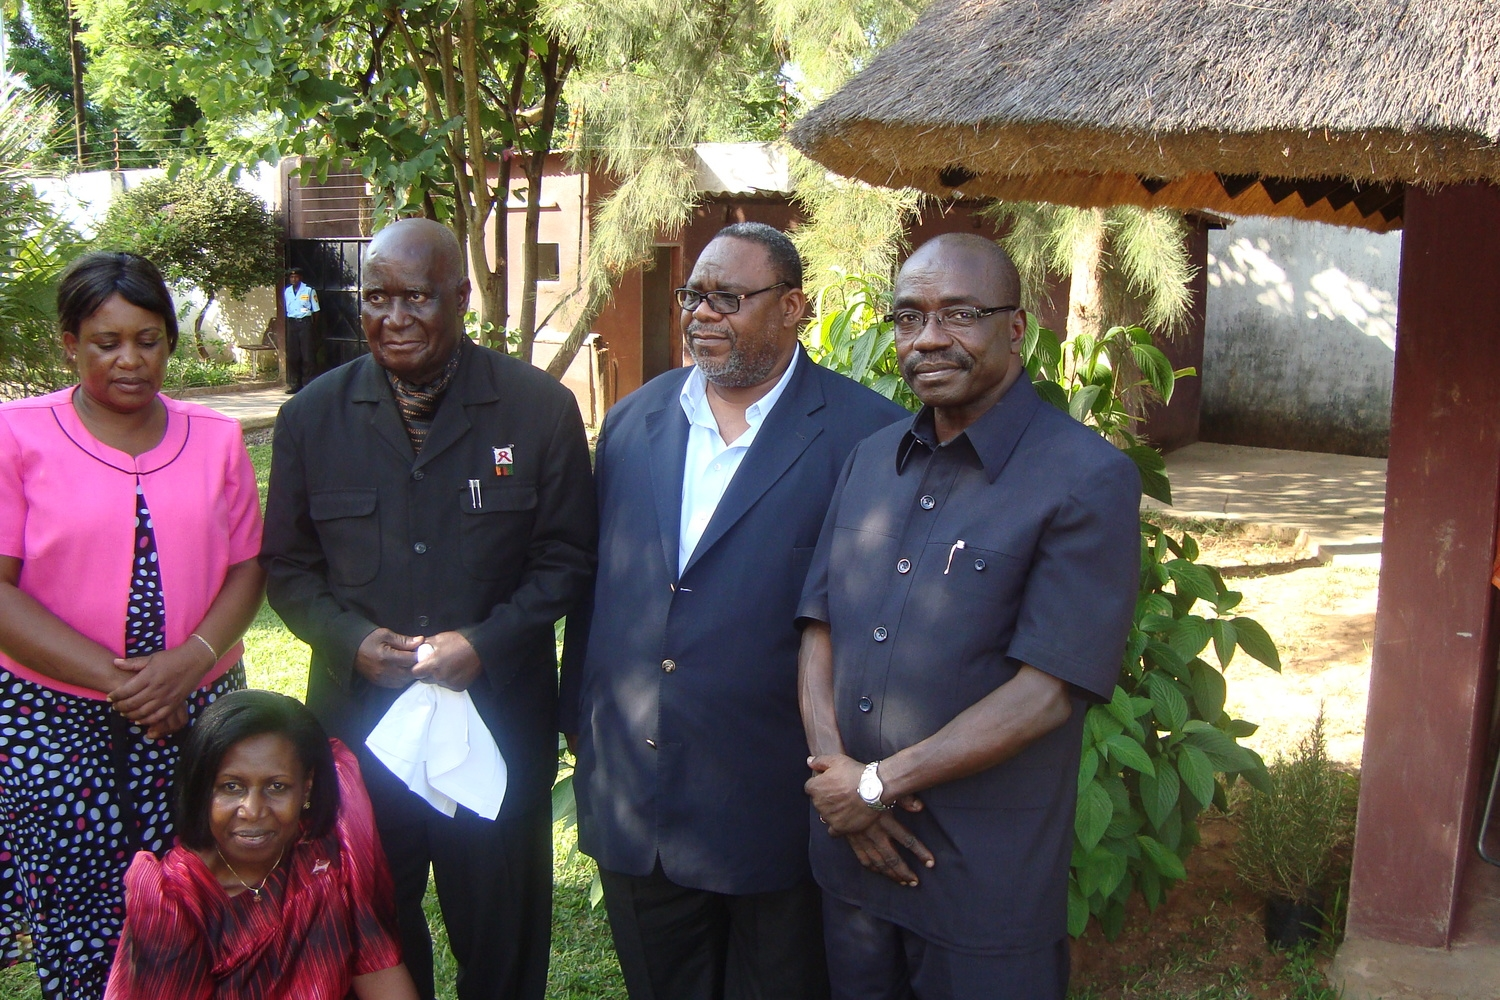 H.E. President Kenneth Kaunda (second from left) after he launched Alfred Latigo's book in Lusaka, Zambia, 2010. GIDE has an office for Southern Africa in Lusaka, Zambia. Also seen: the Paramount Chief Mpezeni of the Ngonis in Malawi & Zambia (2nd from right) and his wife (extreme left); and Mrs. Sarah Latigo (front)